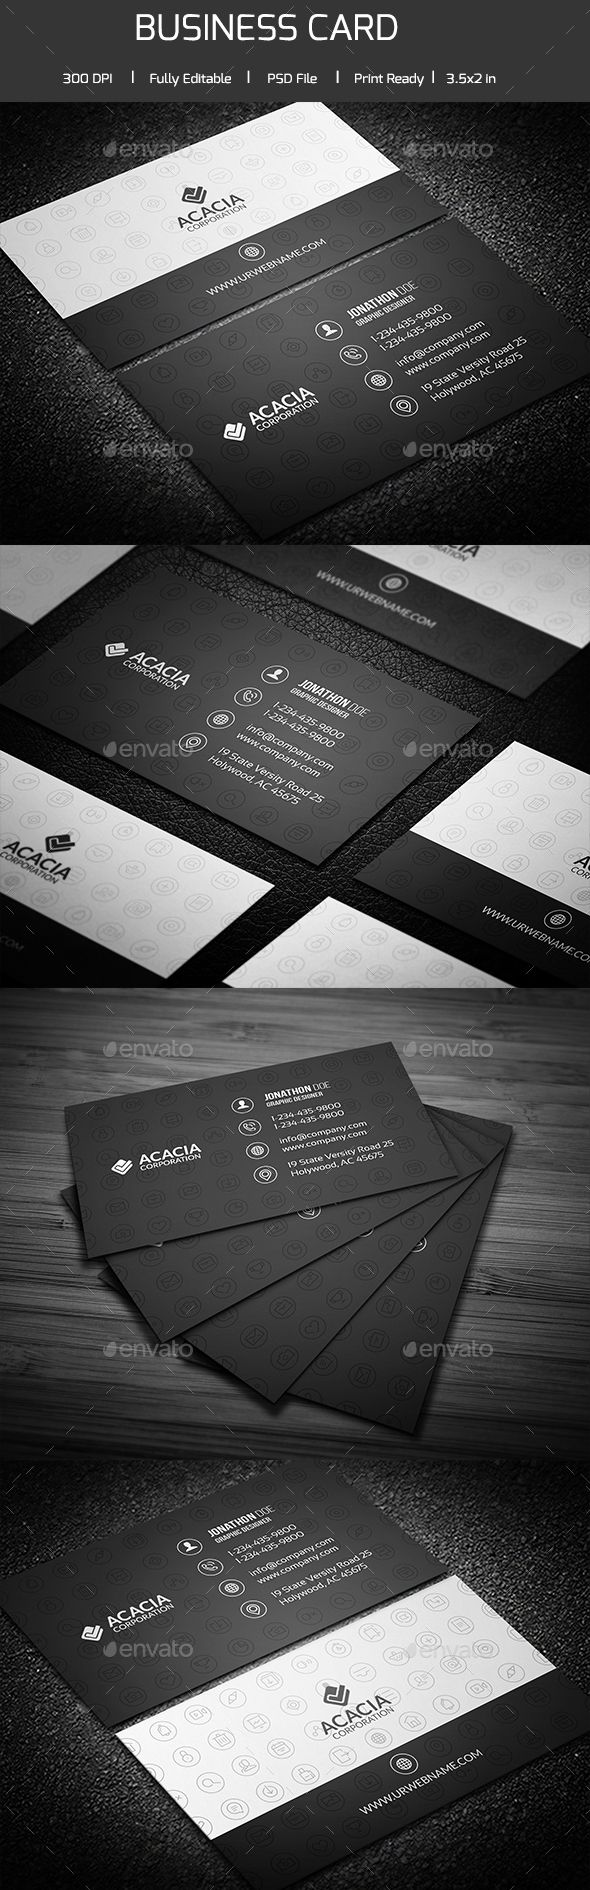 1439 best cool business cards on pinterest images on pinterest social icon business card magicingreecefo Image collections